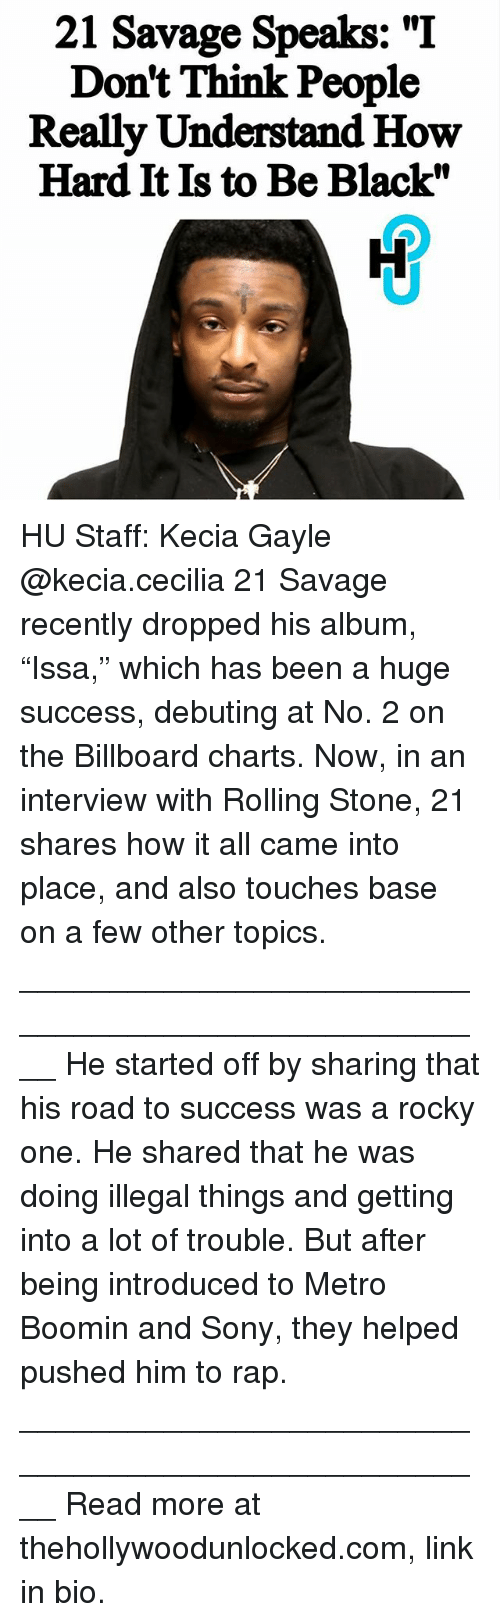 "Metro Boomin: 21 Savage Speaks: ""I  Don't Think People  Really Understand How  Hard It Is to Be Black"" HU Staff: Kecia Gayle @kecia.cecilia 21 Savage recently dropped his album, ""Issa,"" which has been a huge success, debuting at No. 2 on the Billboard charts. Now, in an interview with Rolling Stone, 21 shares how it all came into place, and also touches base on a few other topics. ____________________________________________________ He started off by sharing that his road to success was a rocky one. He shared that he was doing illegal things and getting into a lot of trouble. But after being introduced to Metro Boomin and Sony, they helped pushed him to rap. ____________________________________________________ Read more at thehollywoodunlocked.com, link in bio."